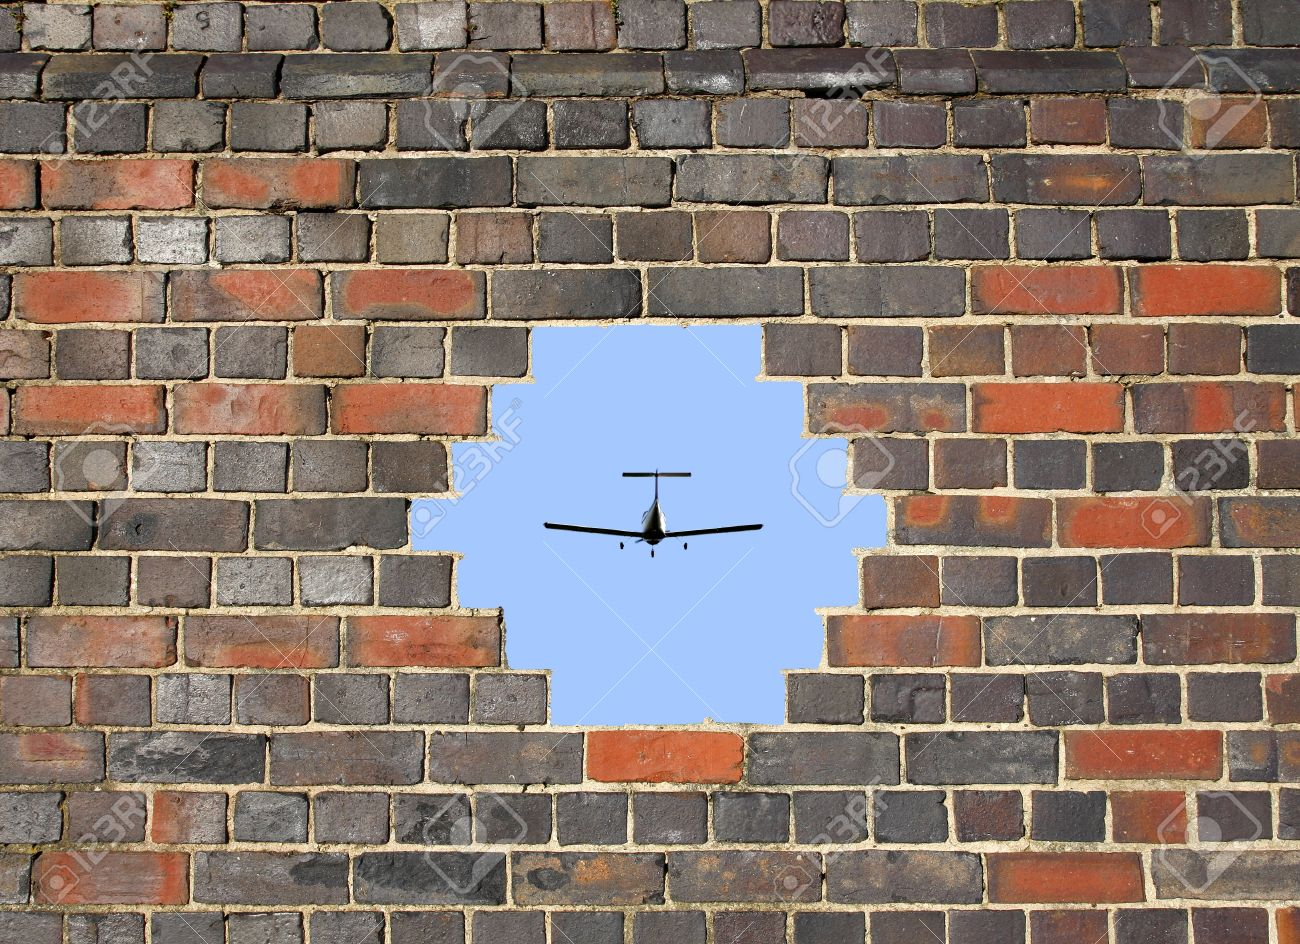 Small plane through a hole in a brick wall background - 16239578